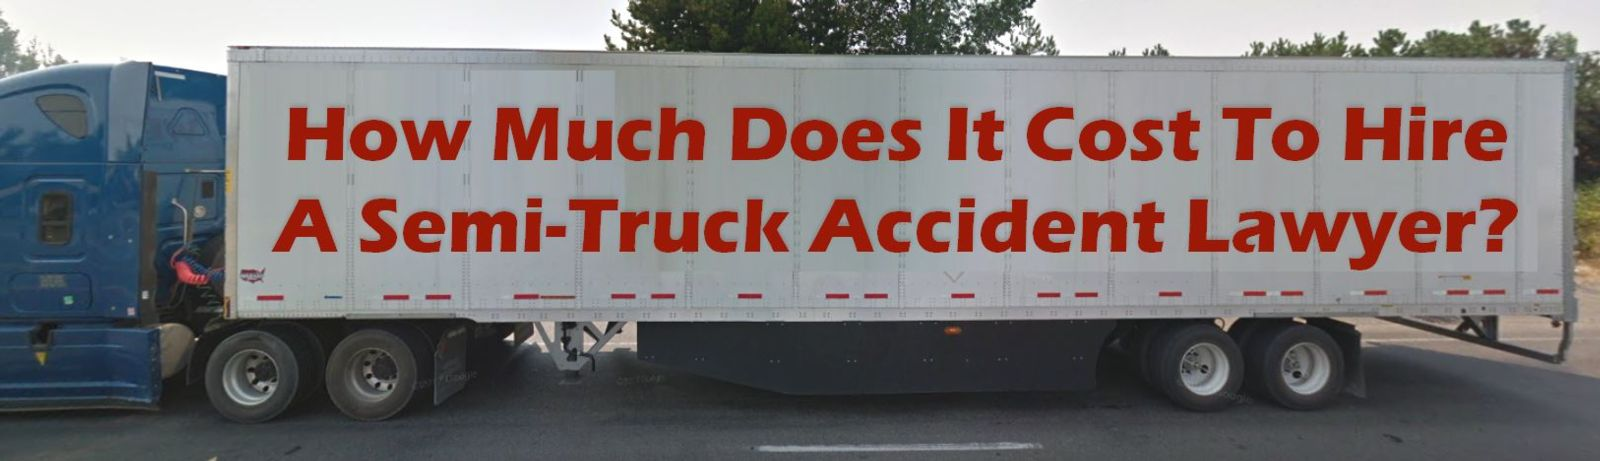 semi truck accident lawyer fees